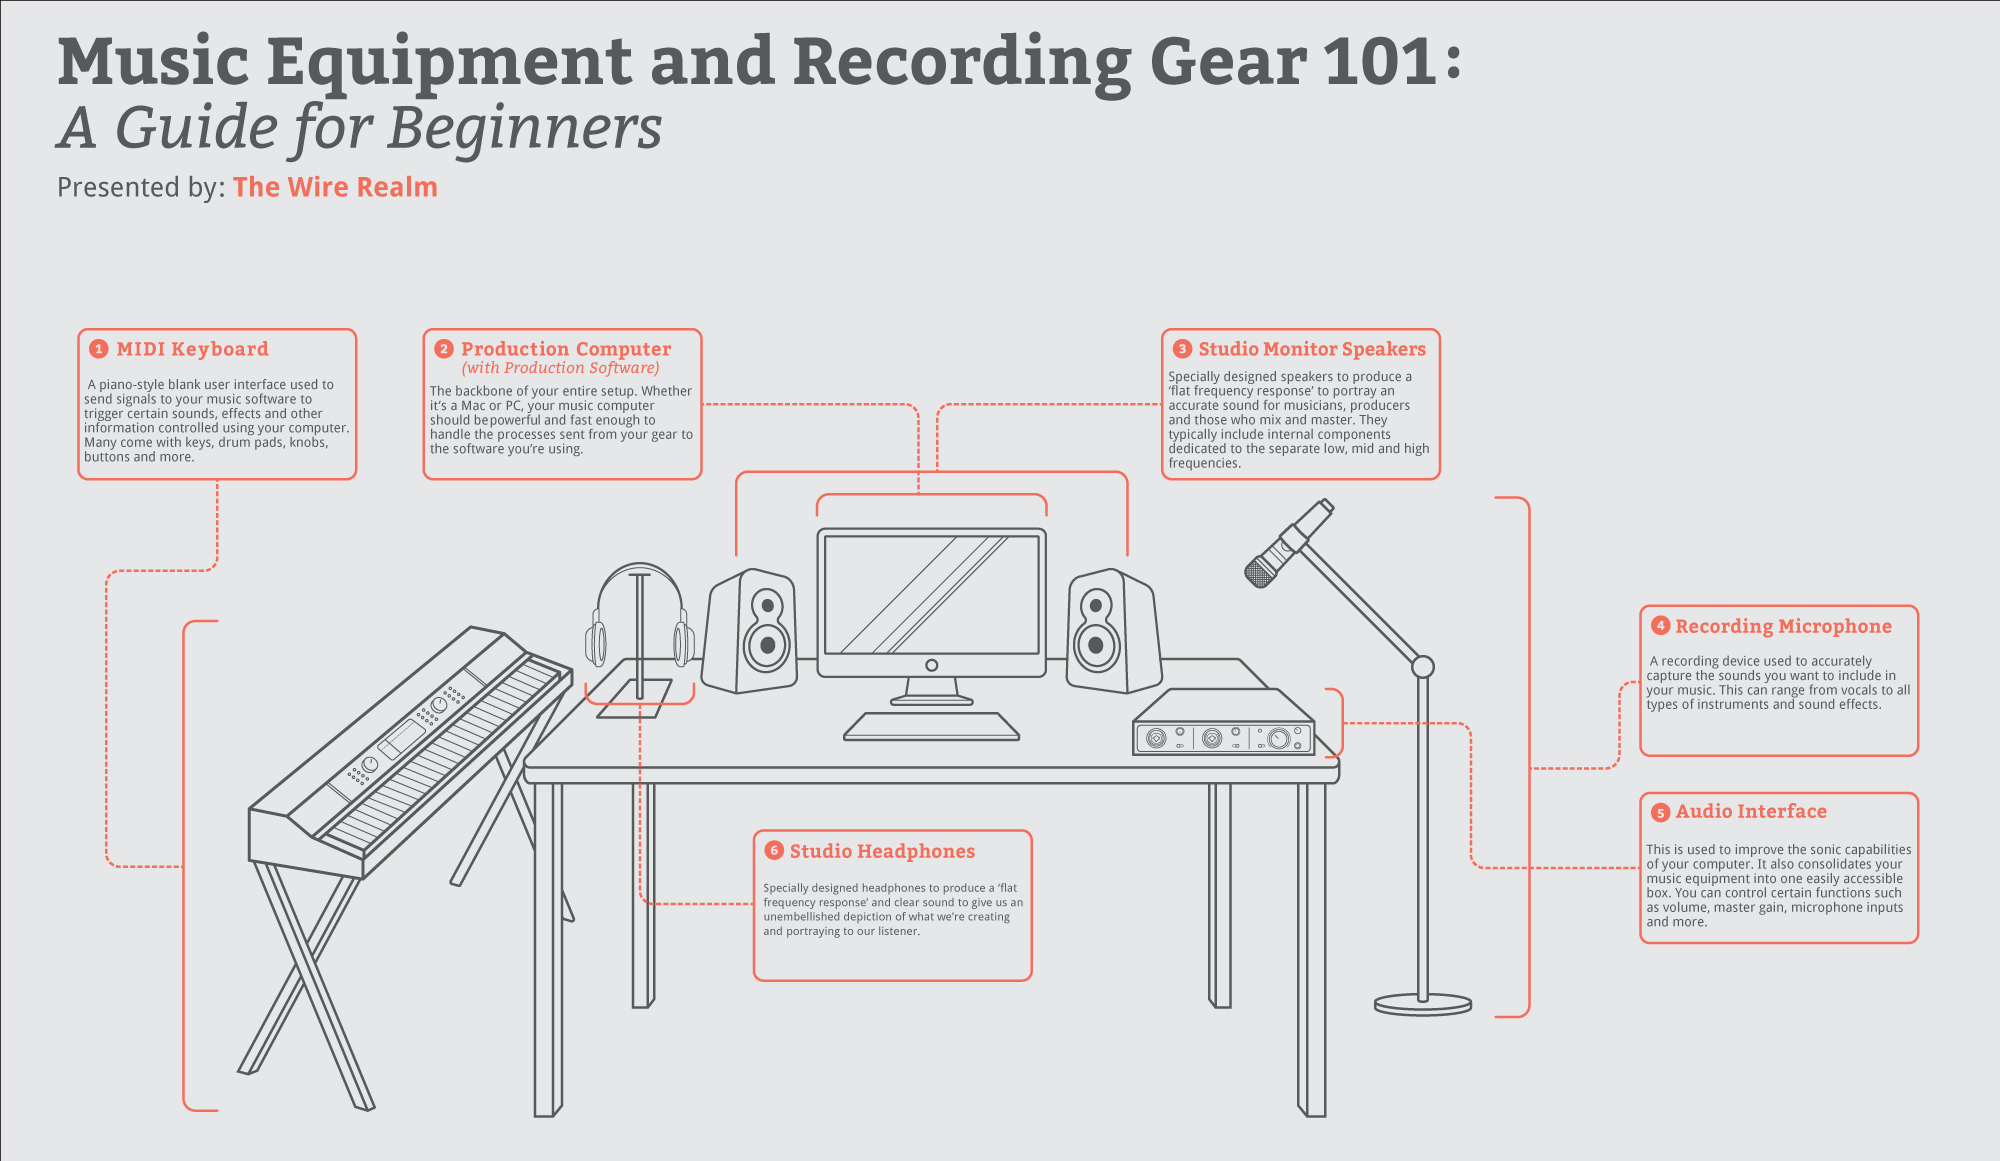 A nifty infographic on the essential recording studio gear for beginners